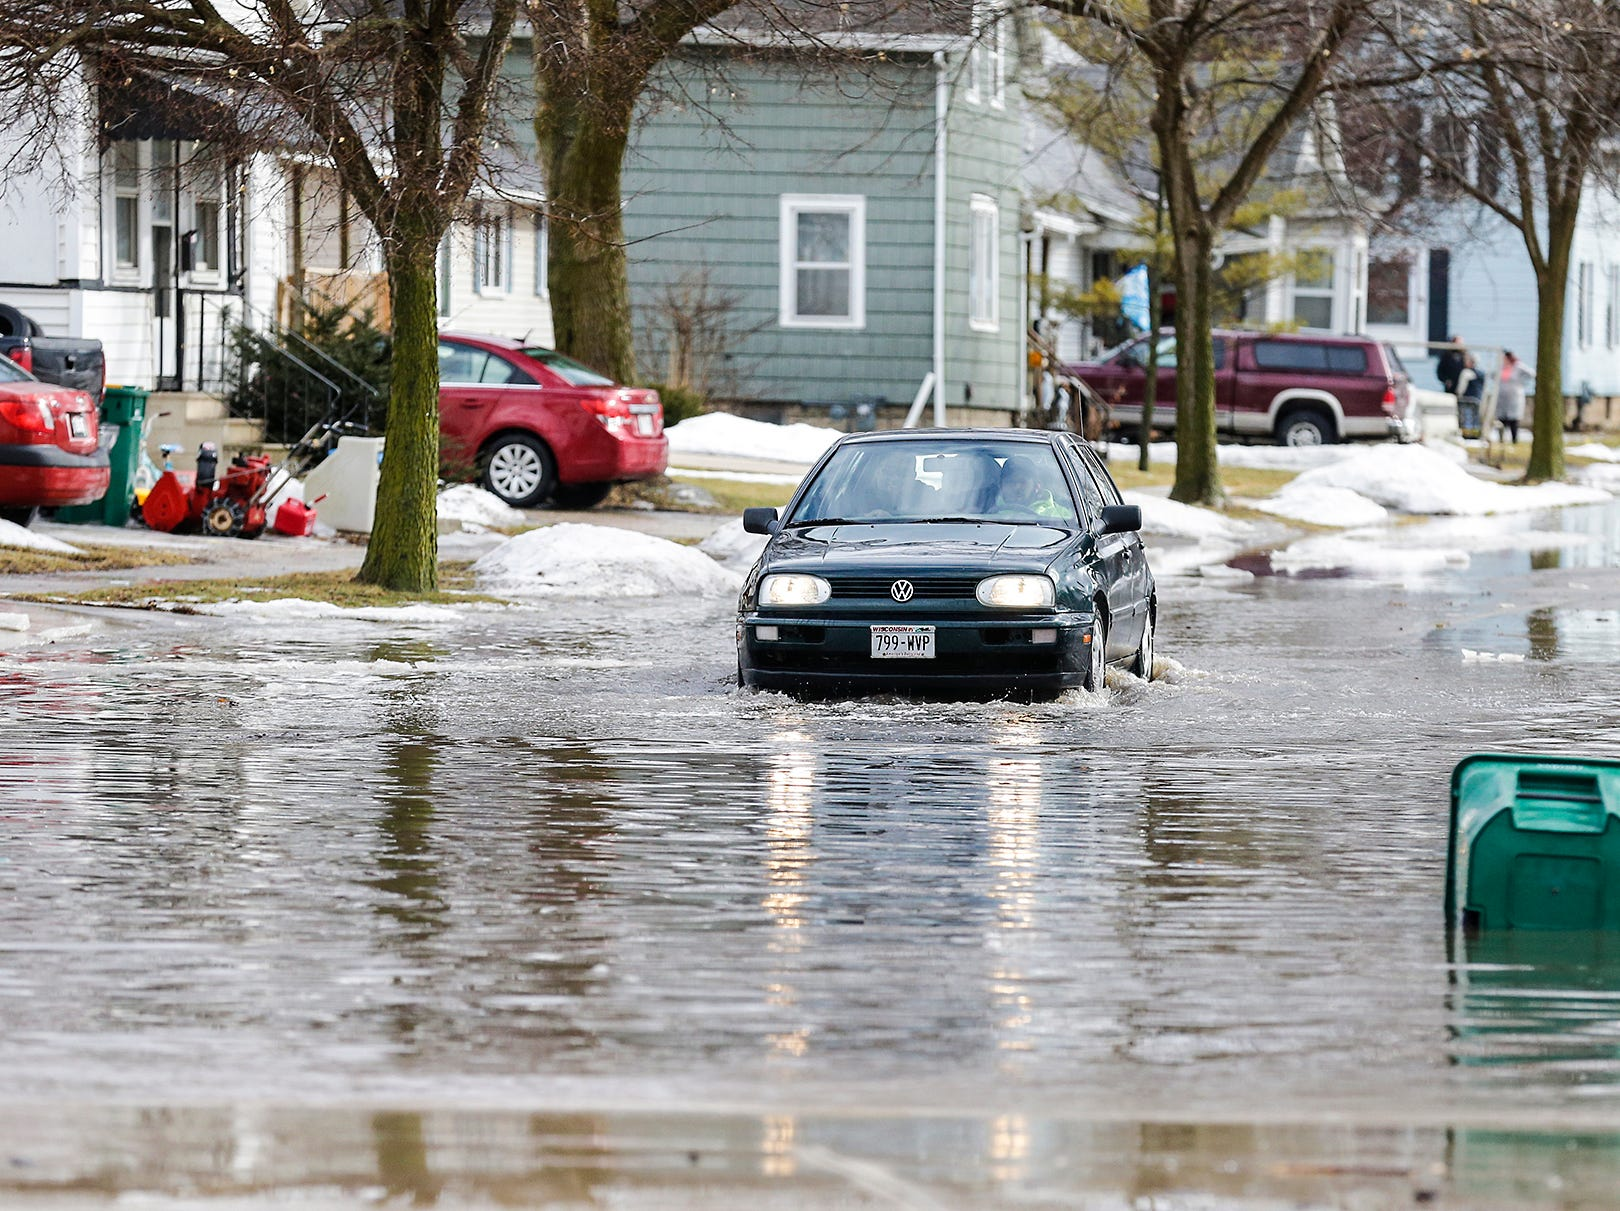 A car drives in high water Thursday, March 14, 2019 on Chestnut Street in Fond du Lac, Wisconsin. Ice jams on the east branch of the Fond du Lac River and heavy rainfall caused flooding problems throughout the city.